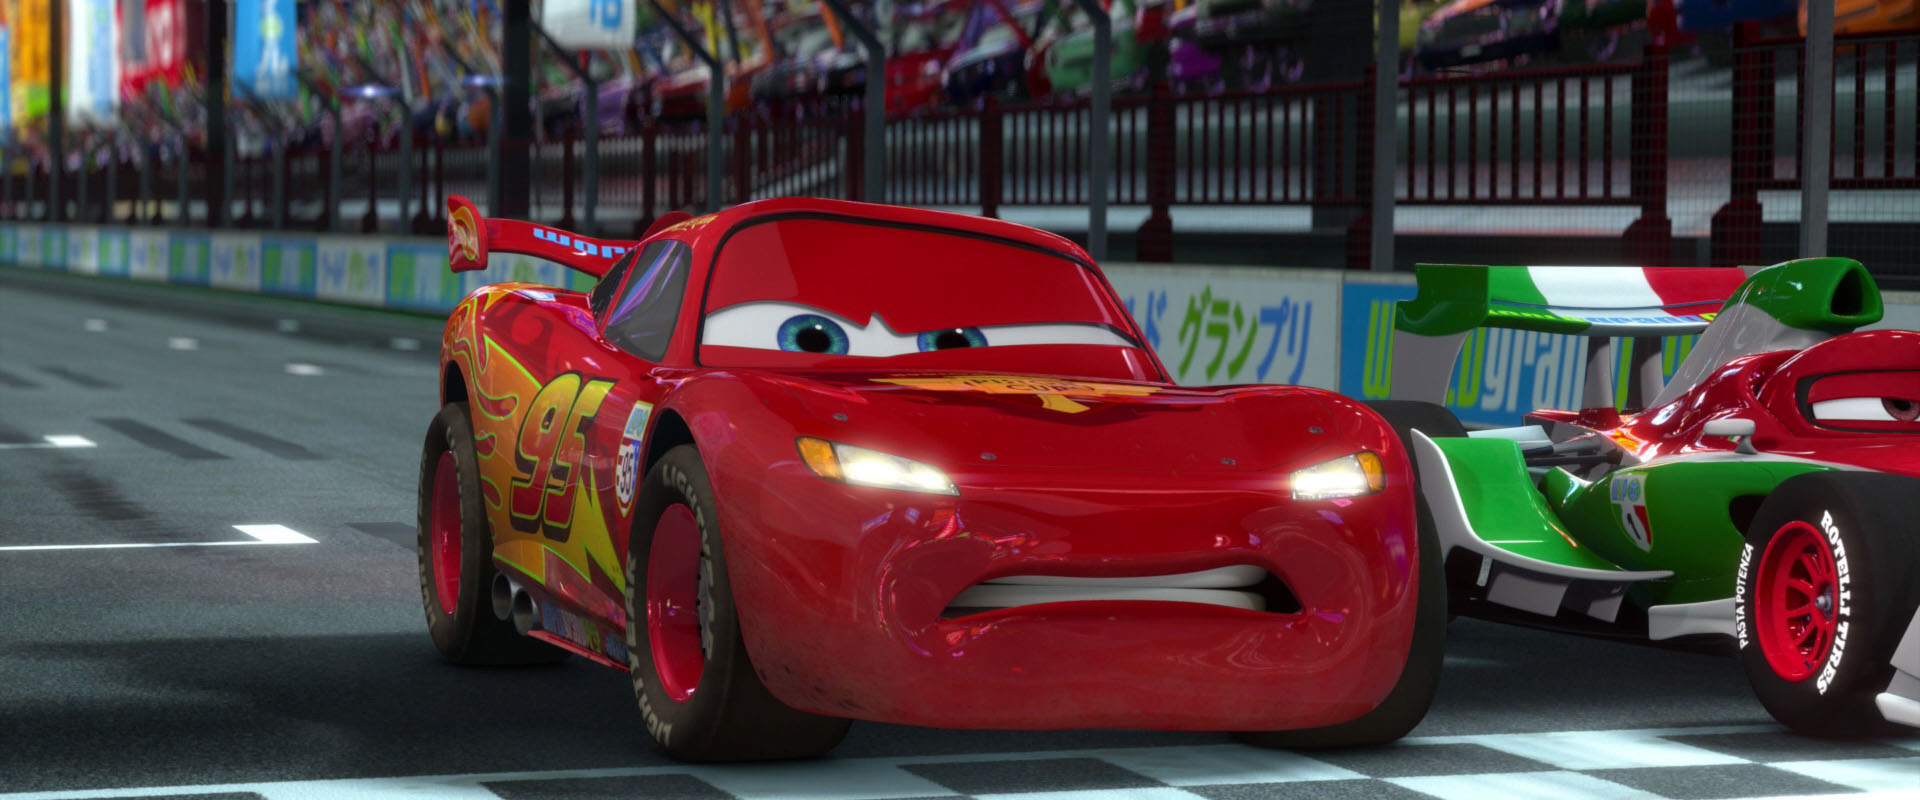 lightning mcqueen character from �cars� pixarplanetfr